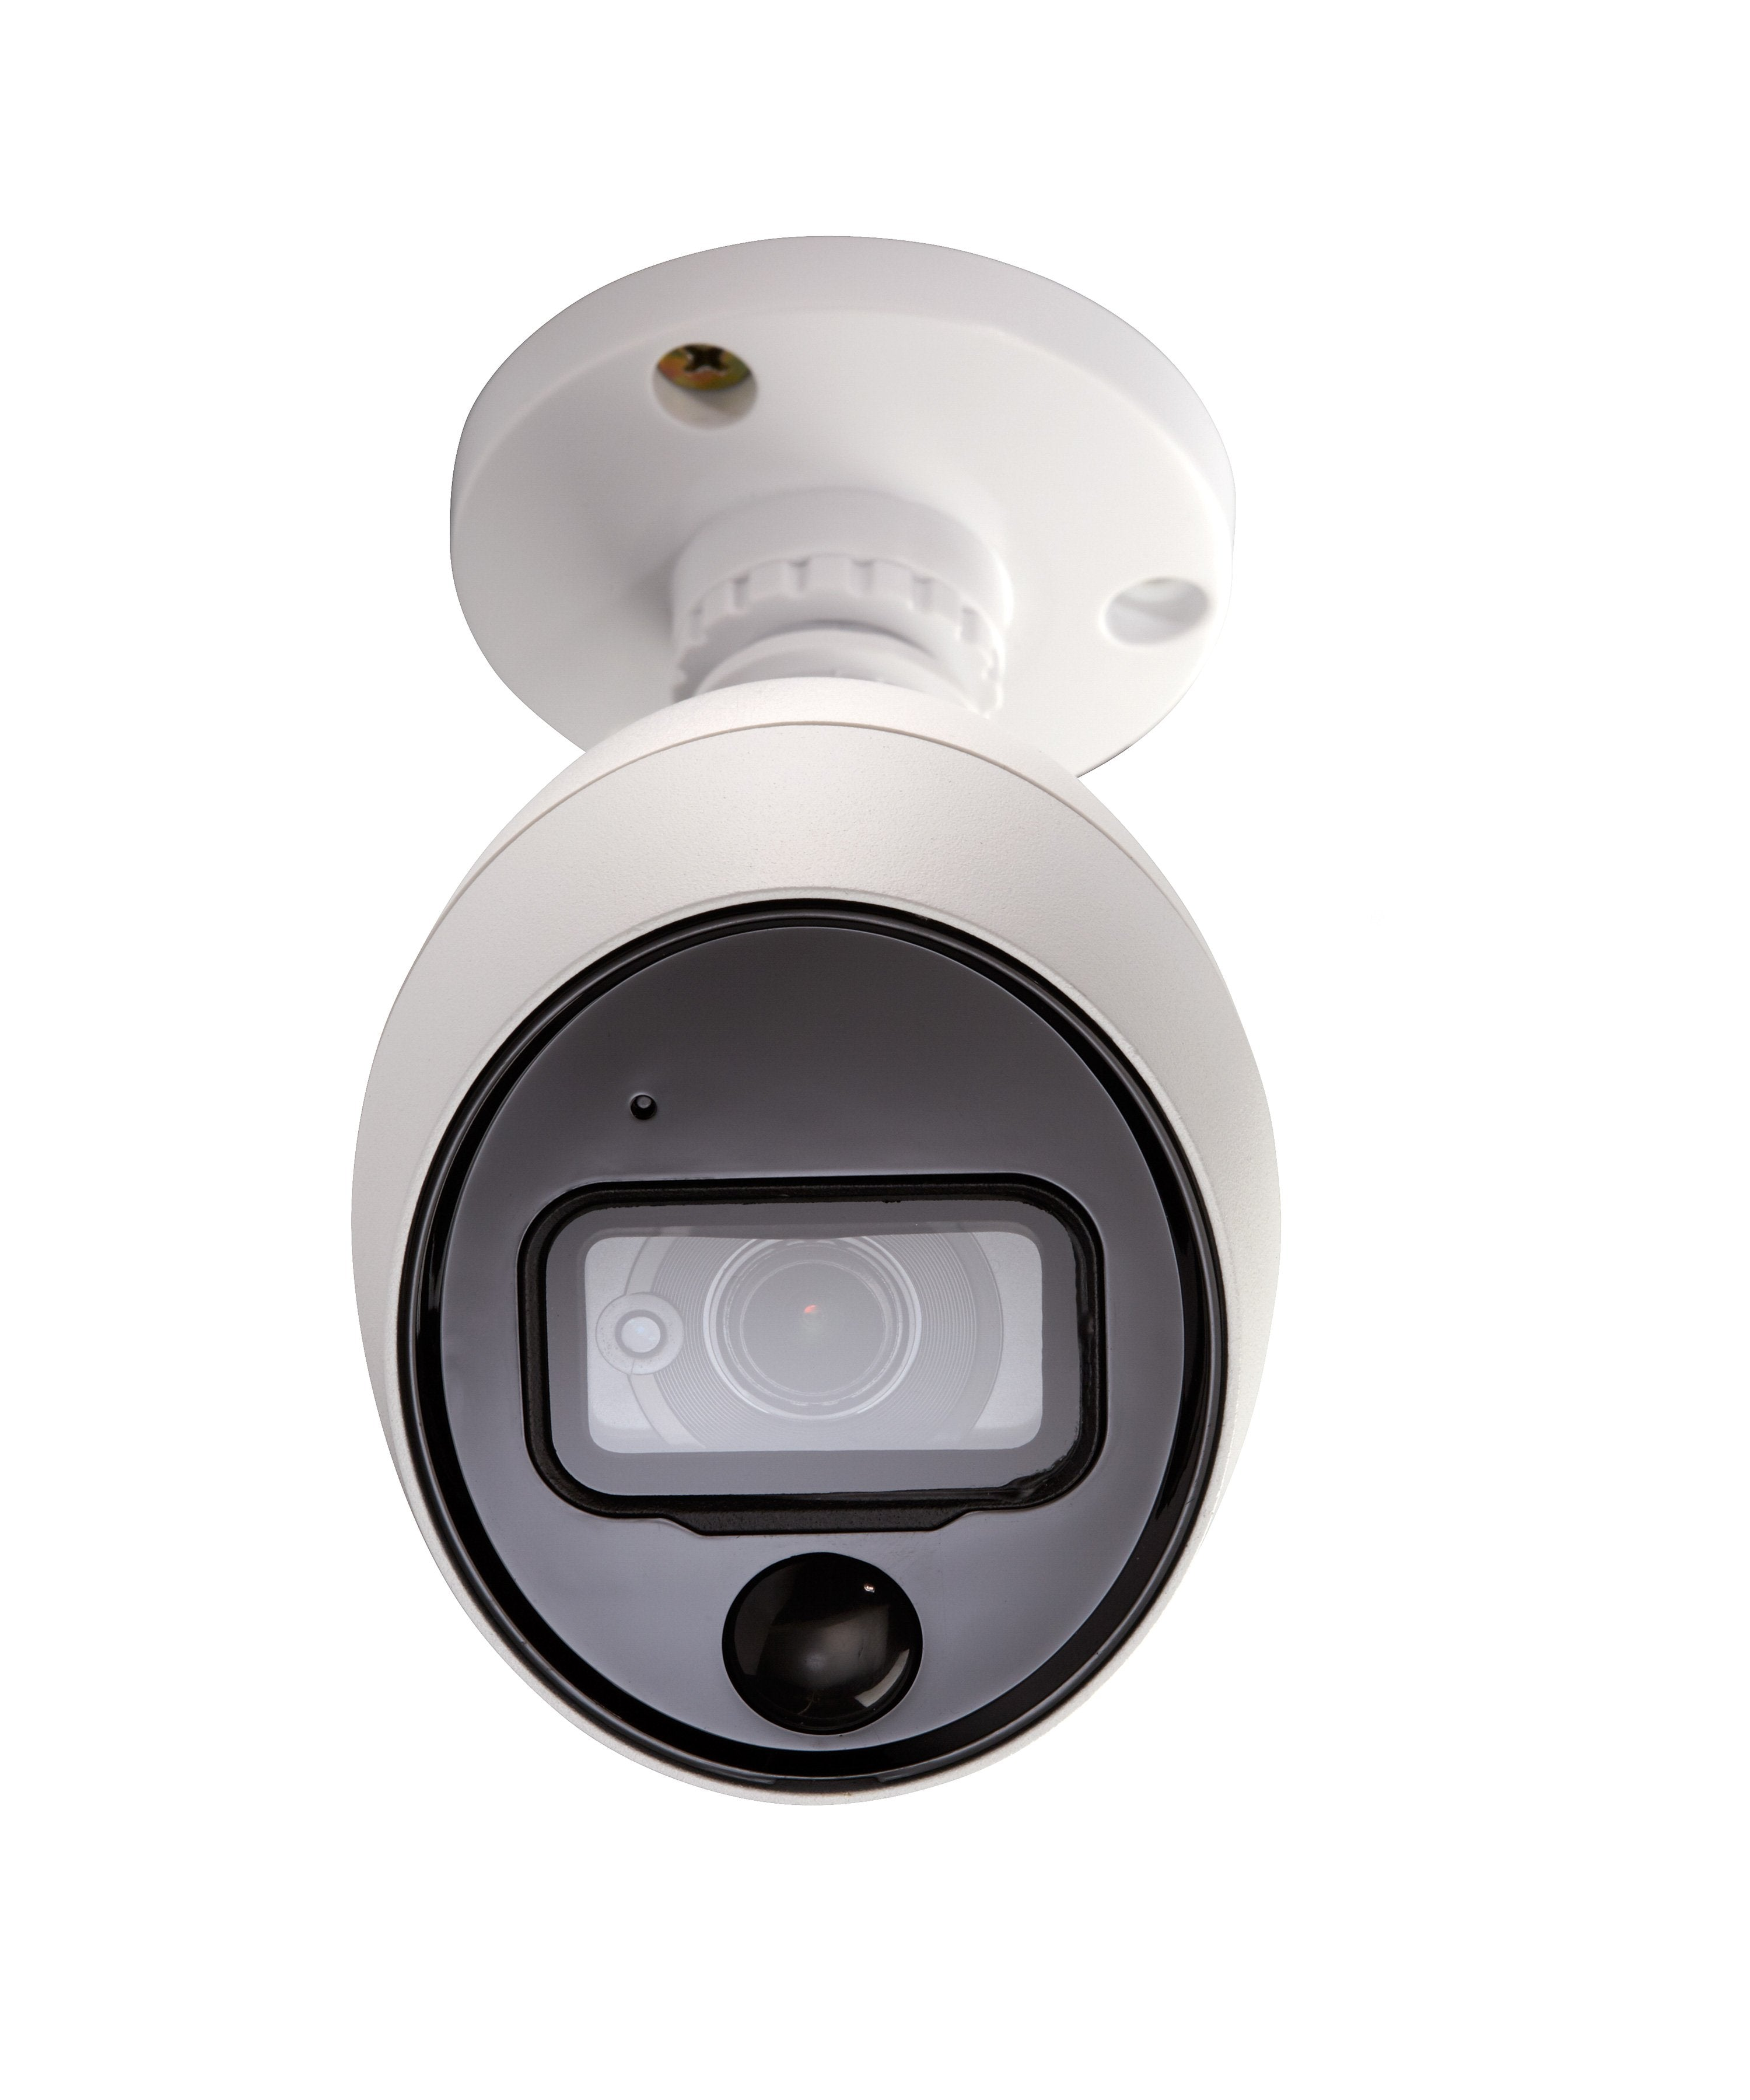 4MP Analog HD Bullet Security Camera with PIR Technology (QCA8081B) Analog HD Camera  - Q-See